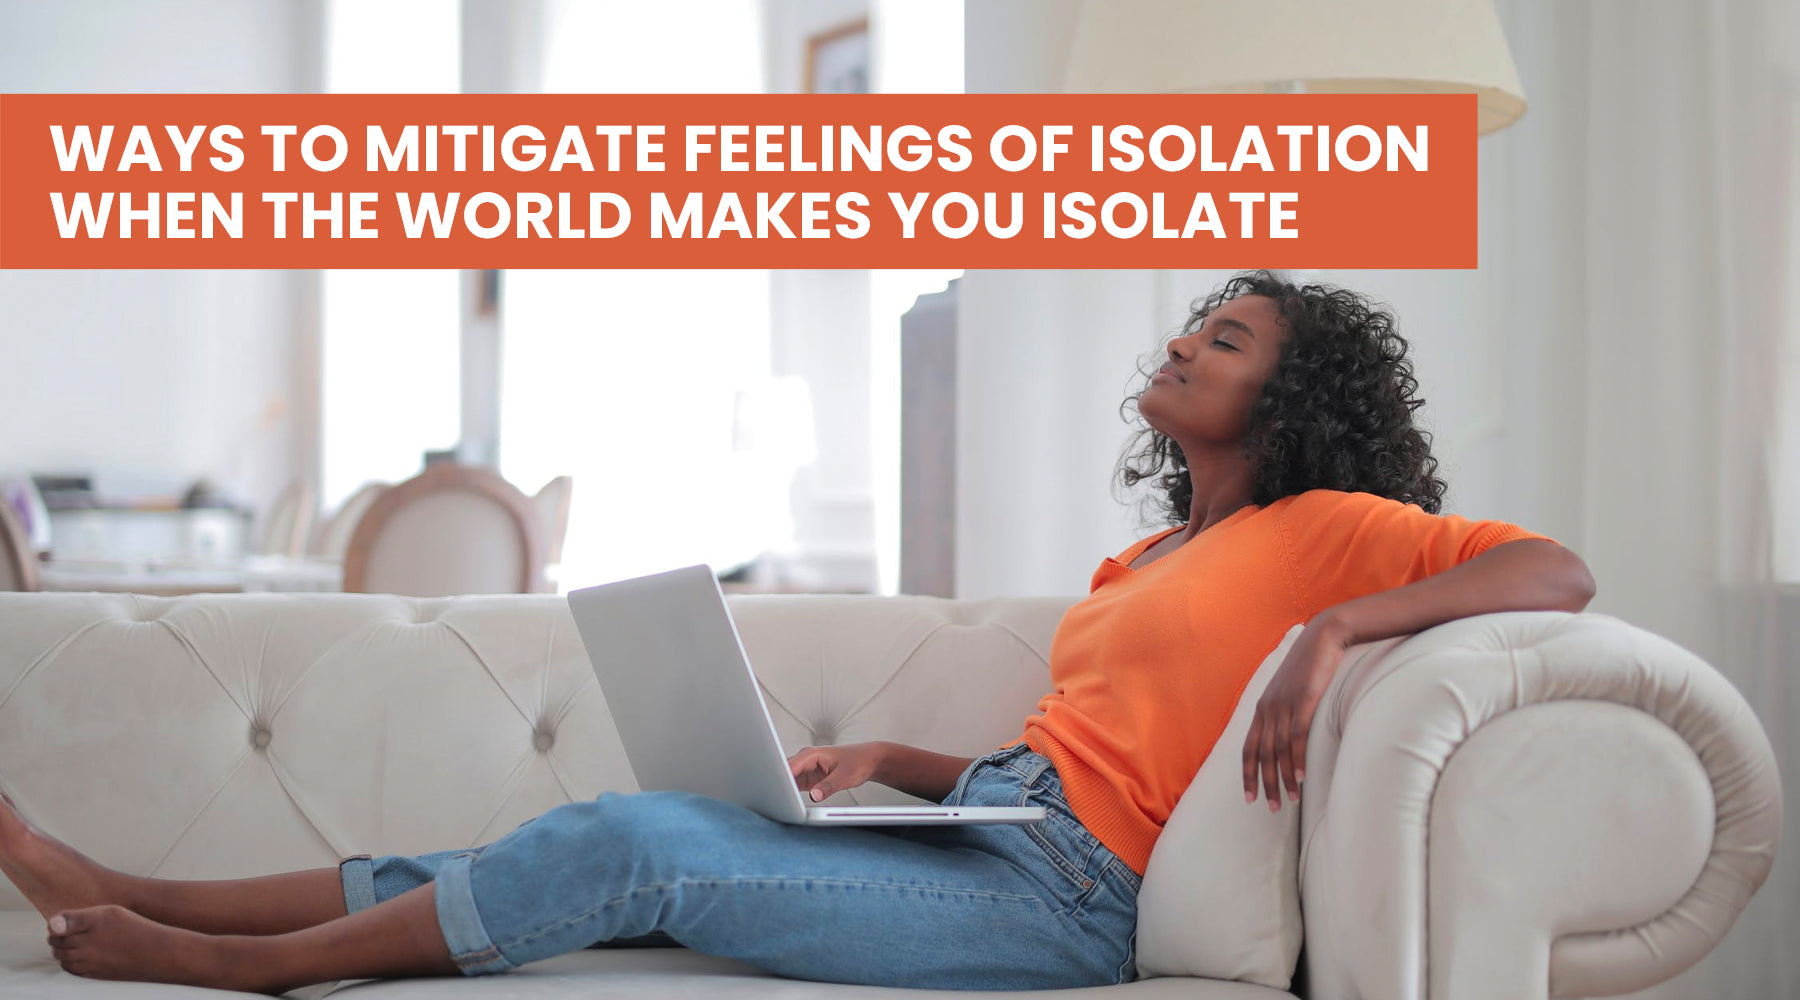 Ways to Mitigate Feelings of Isolation When the World Makes You Isolate